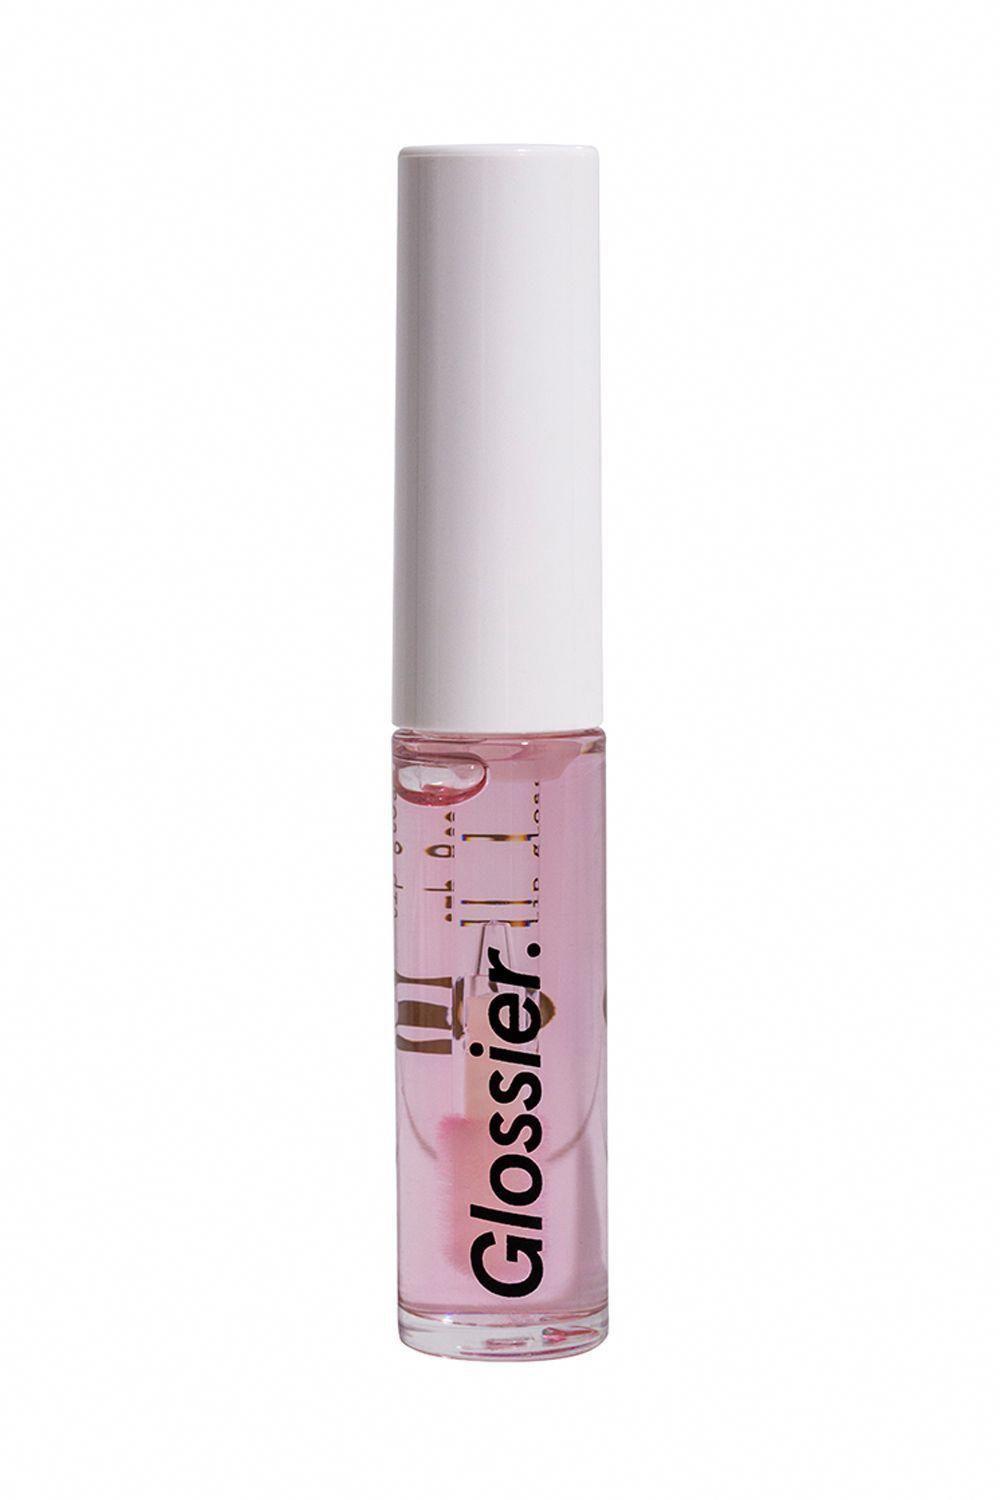 Glossier Lip Gloss Best Lip Gloss Glossier Lip Gloss Glossy Lips